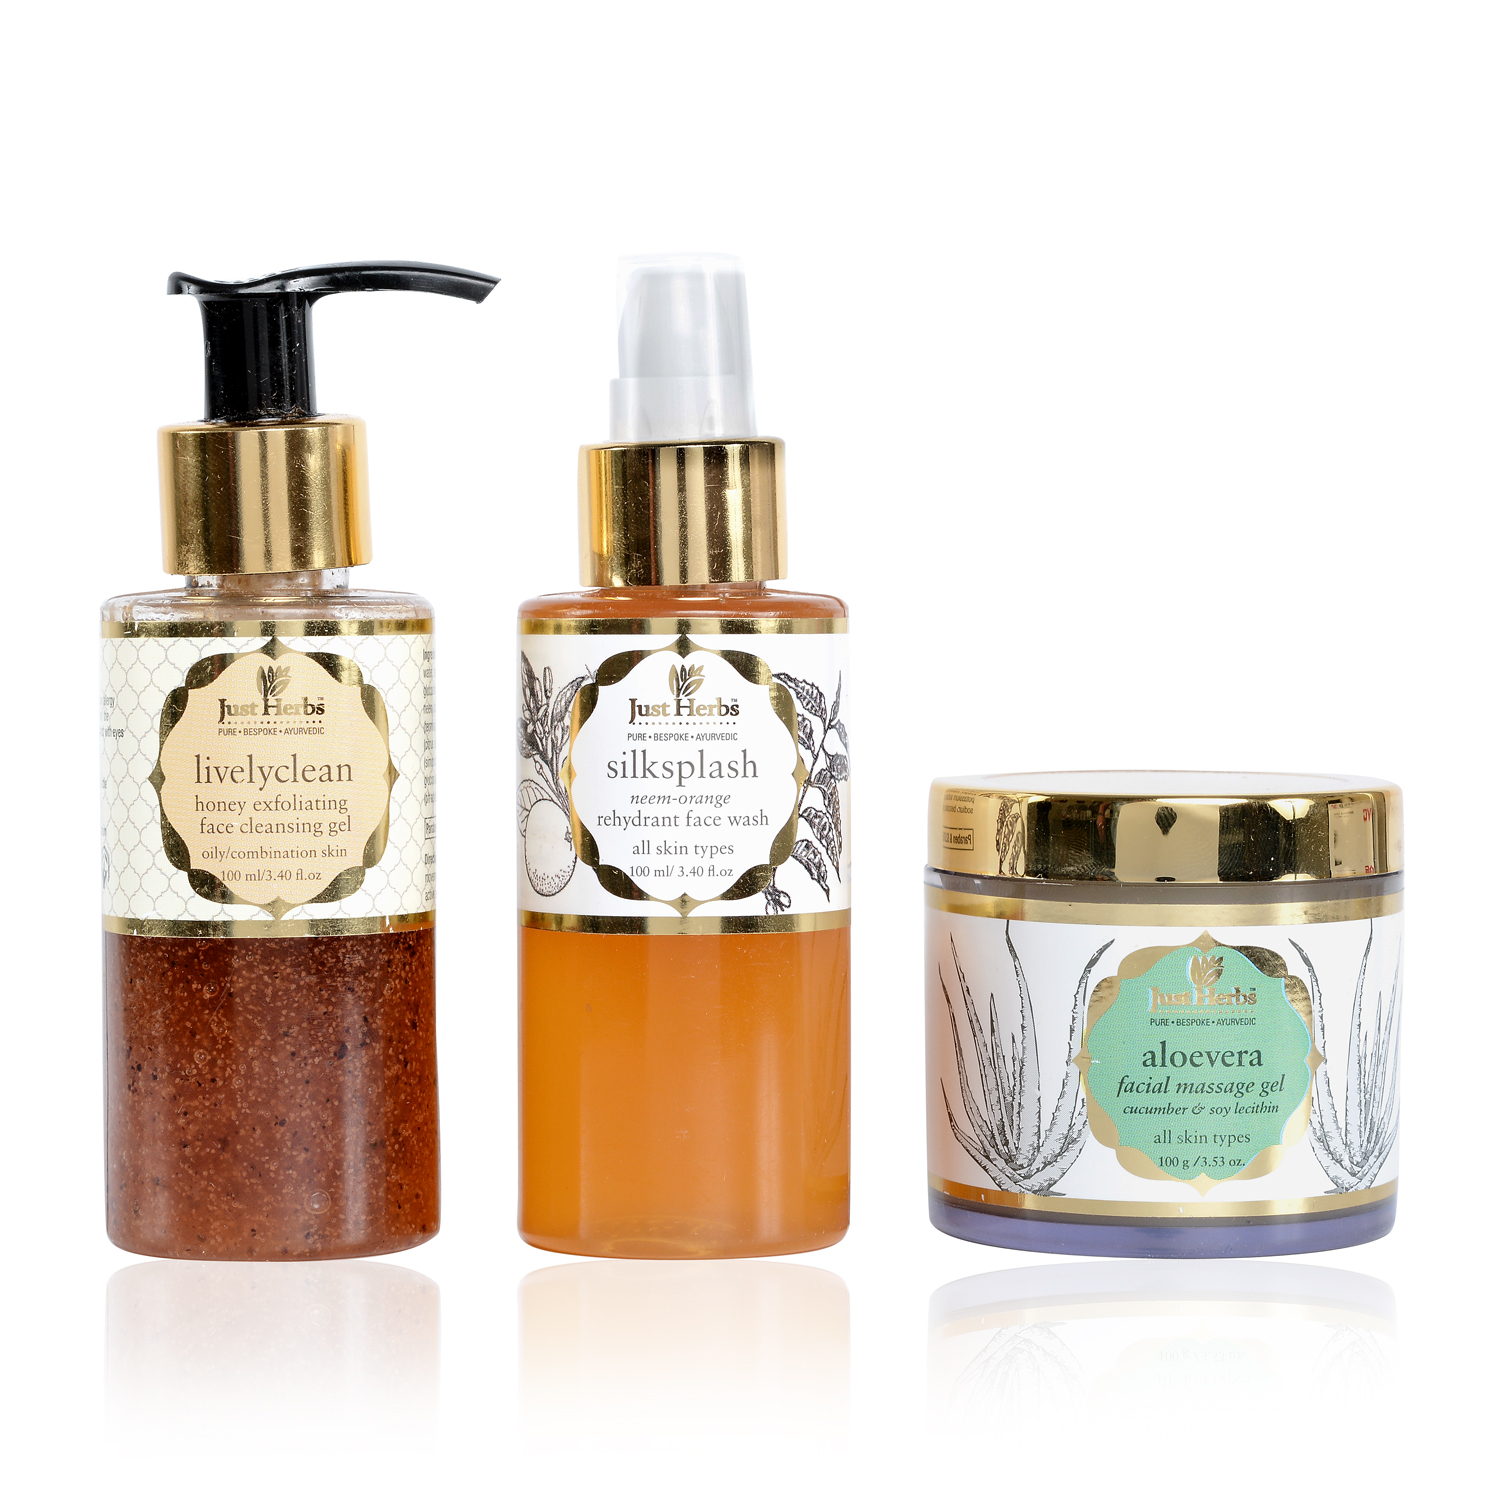 Just Herbs 3-Step Facial Regime Kit (Oily/Normal)